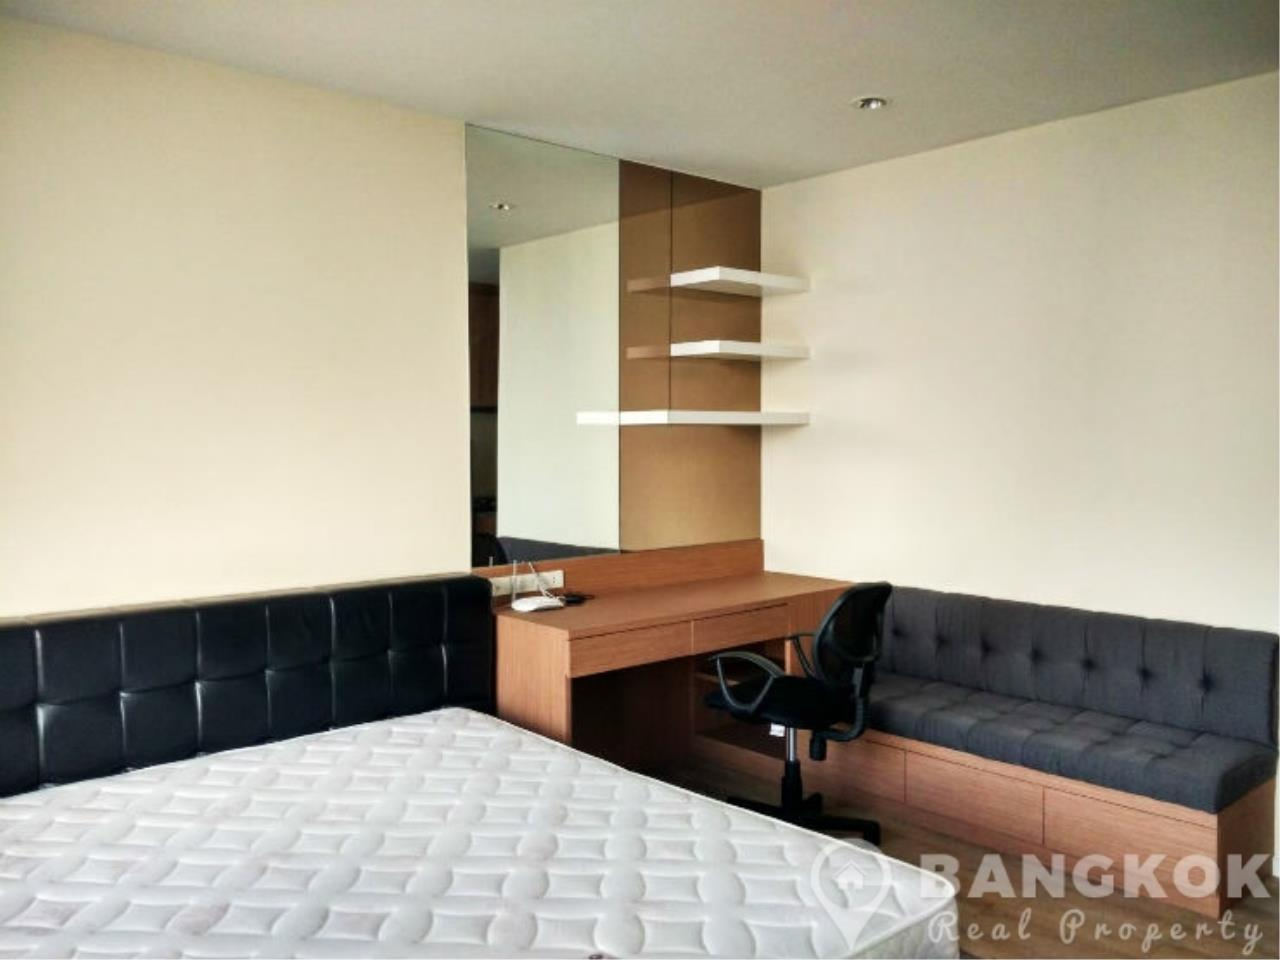 Bangkok Real Property Agency's Issara Ladprao | Modern High Floor Studio near MRT 3